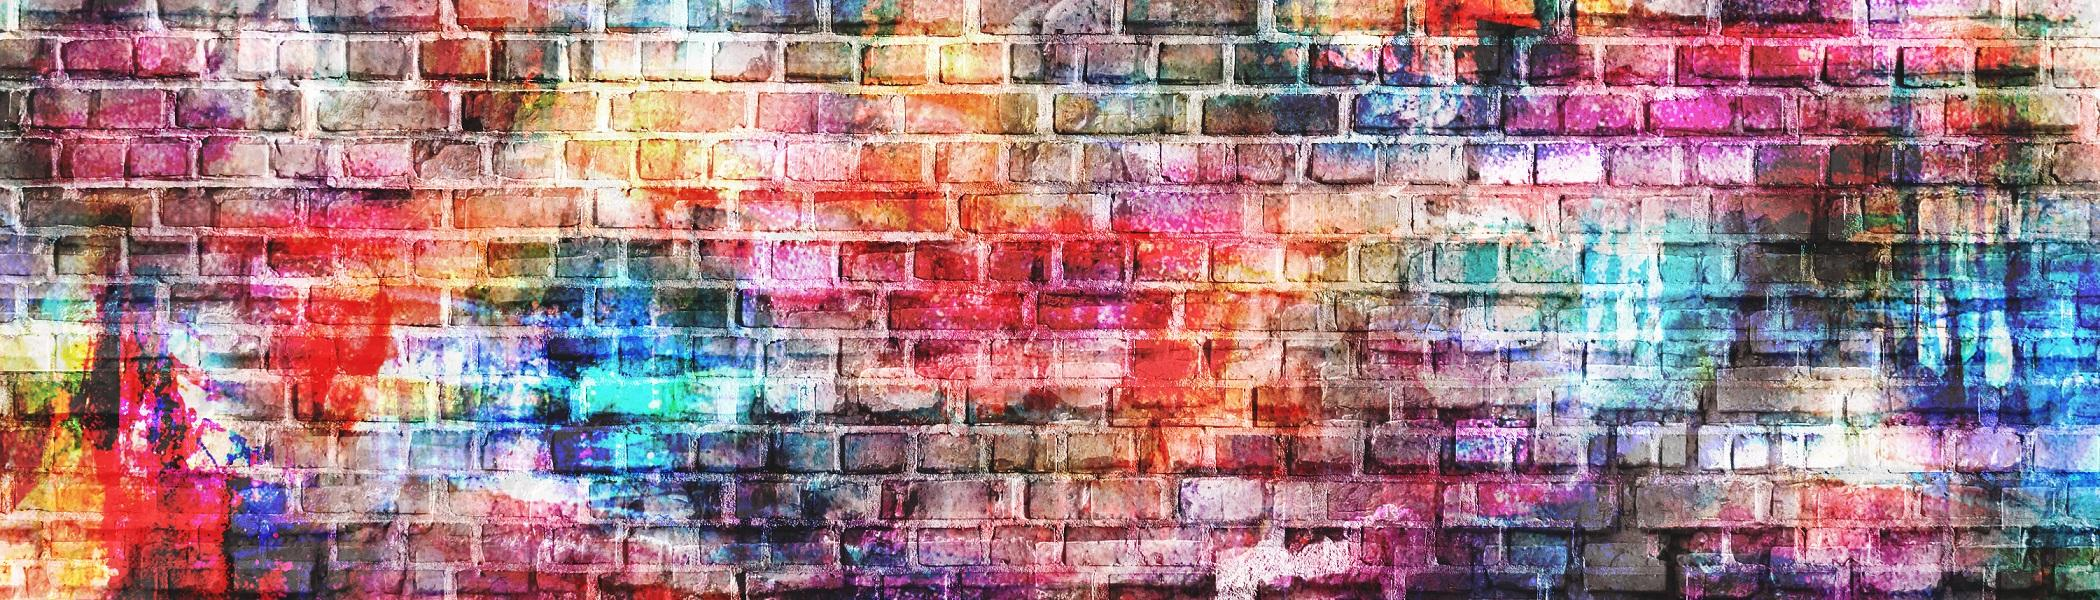 Colourful bricks.